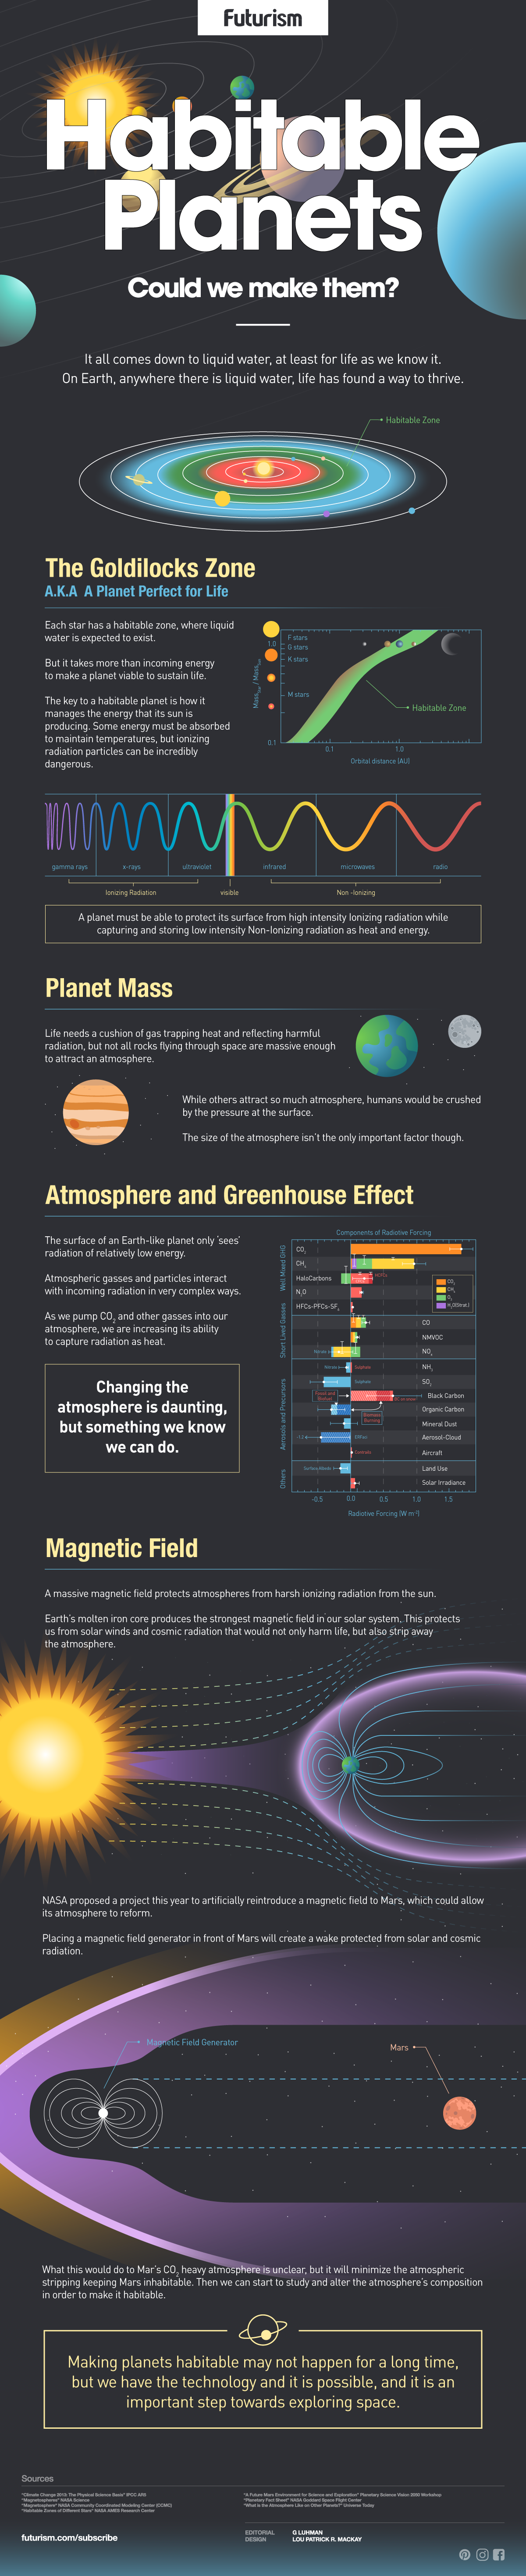 Terraforming 101: How to Make Mars a Habitable Planet